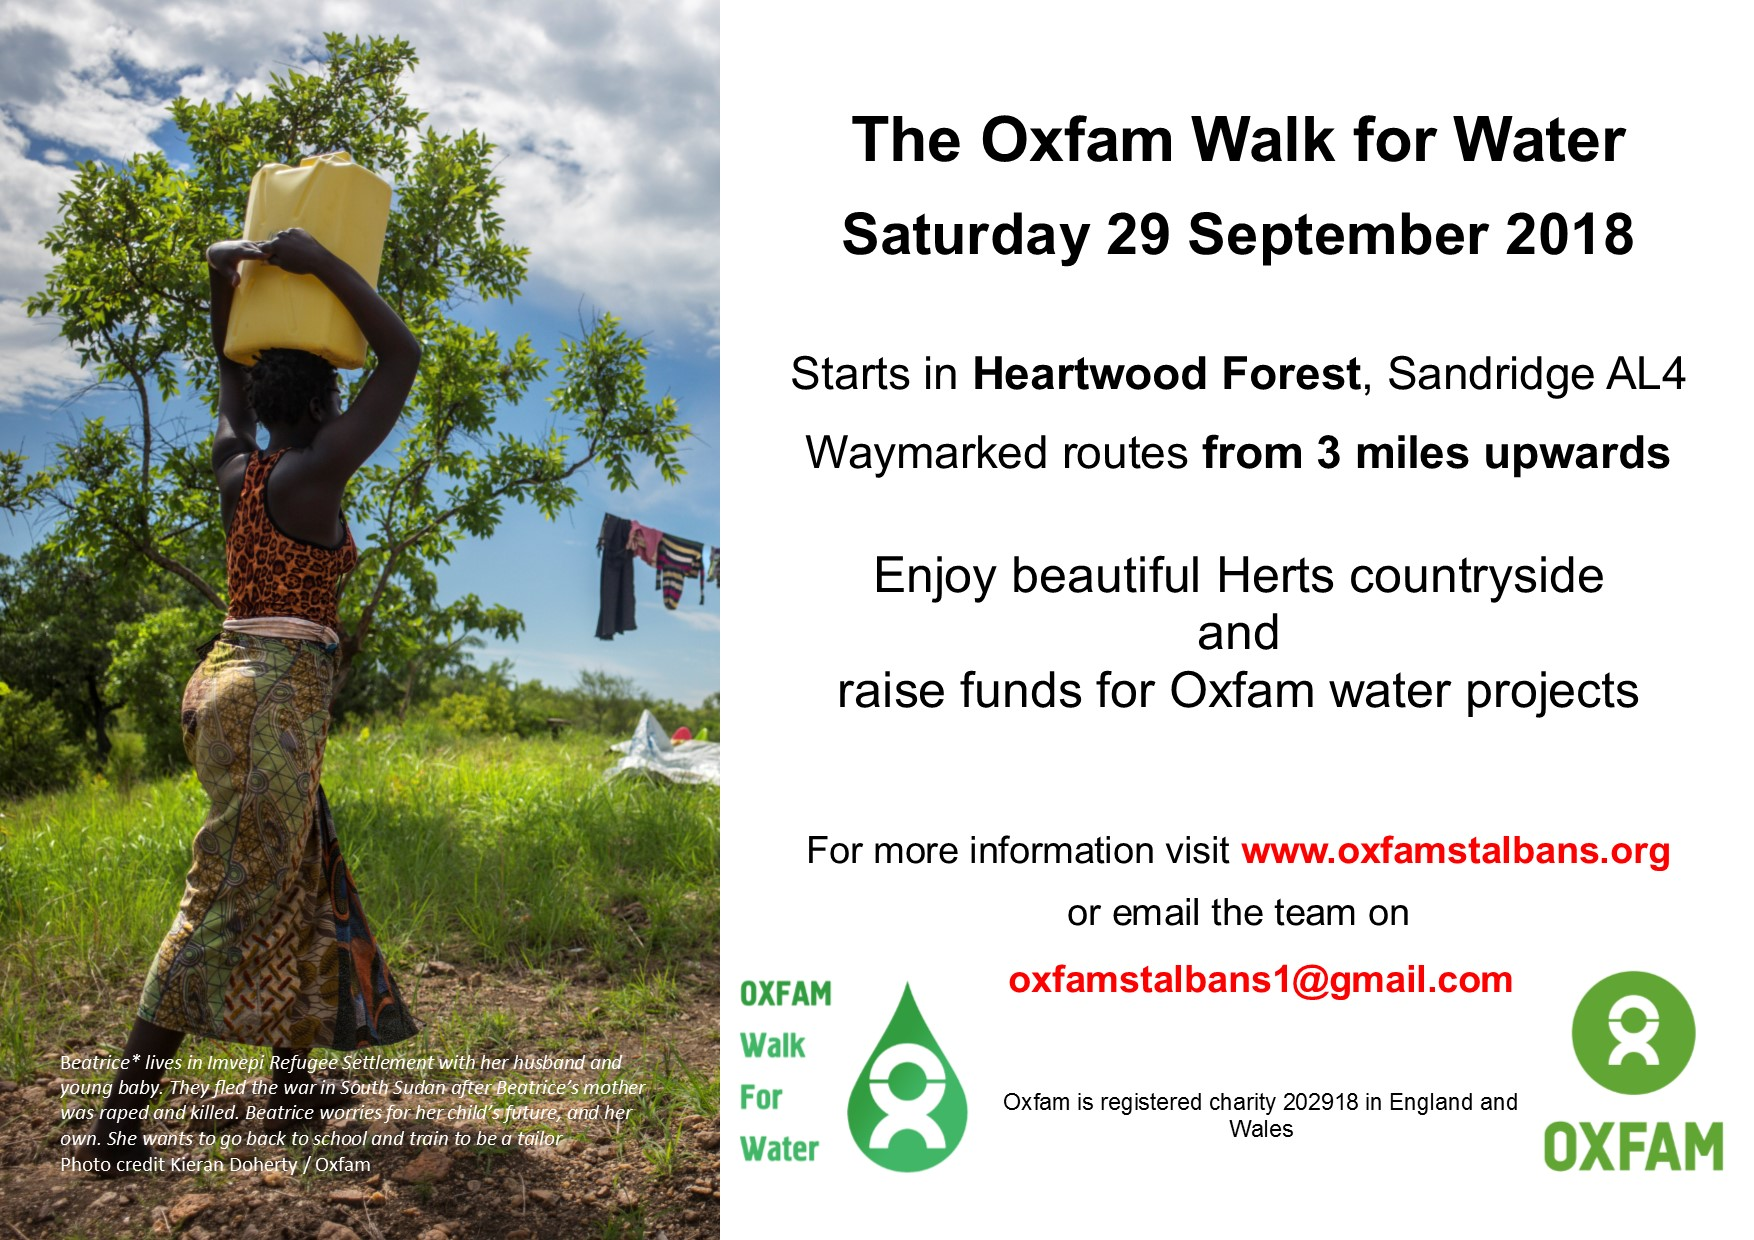 The Oxfam Walk for Water